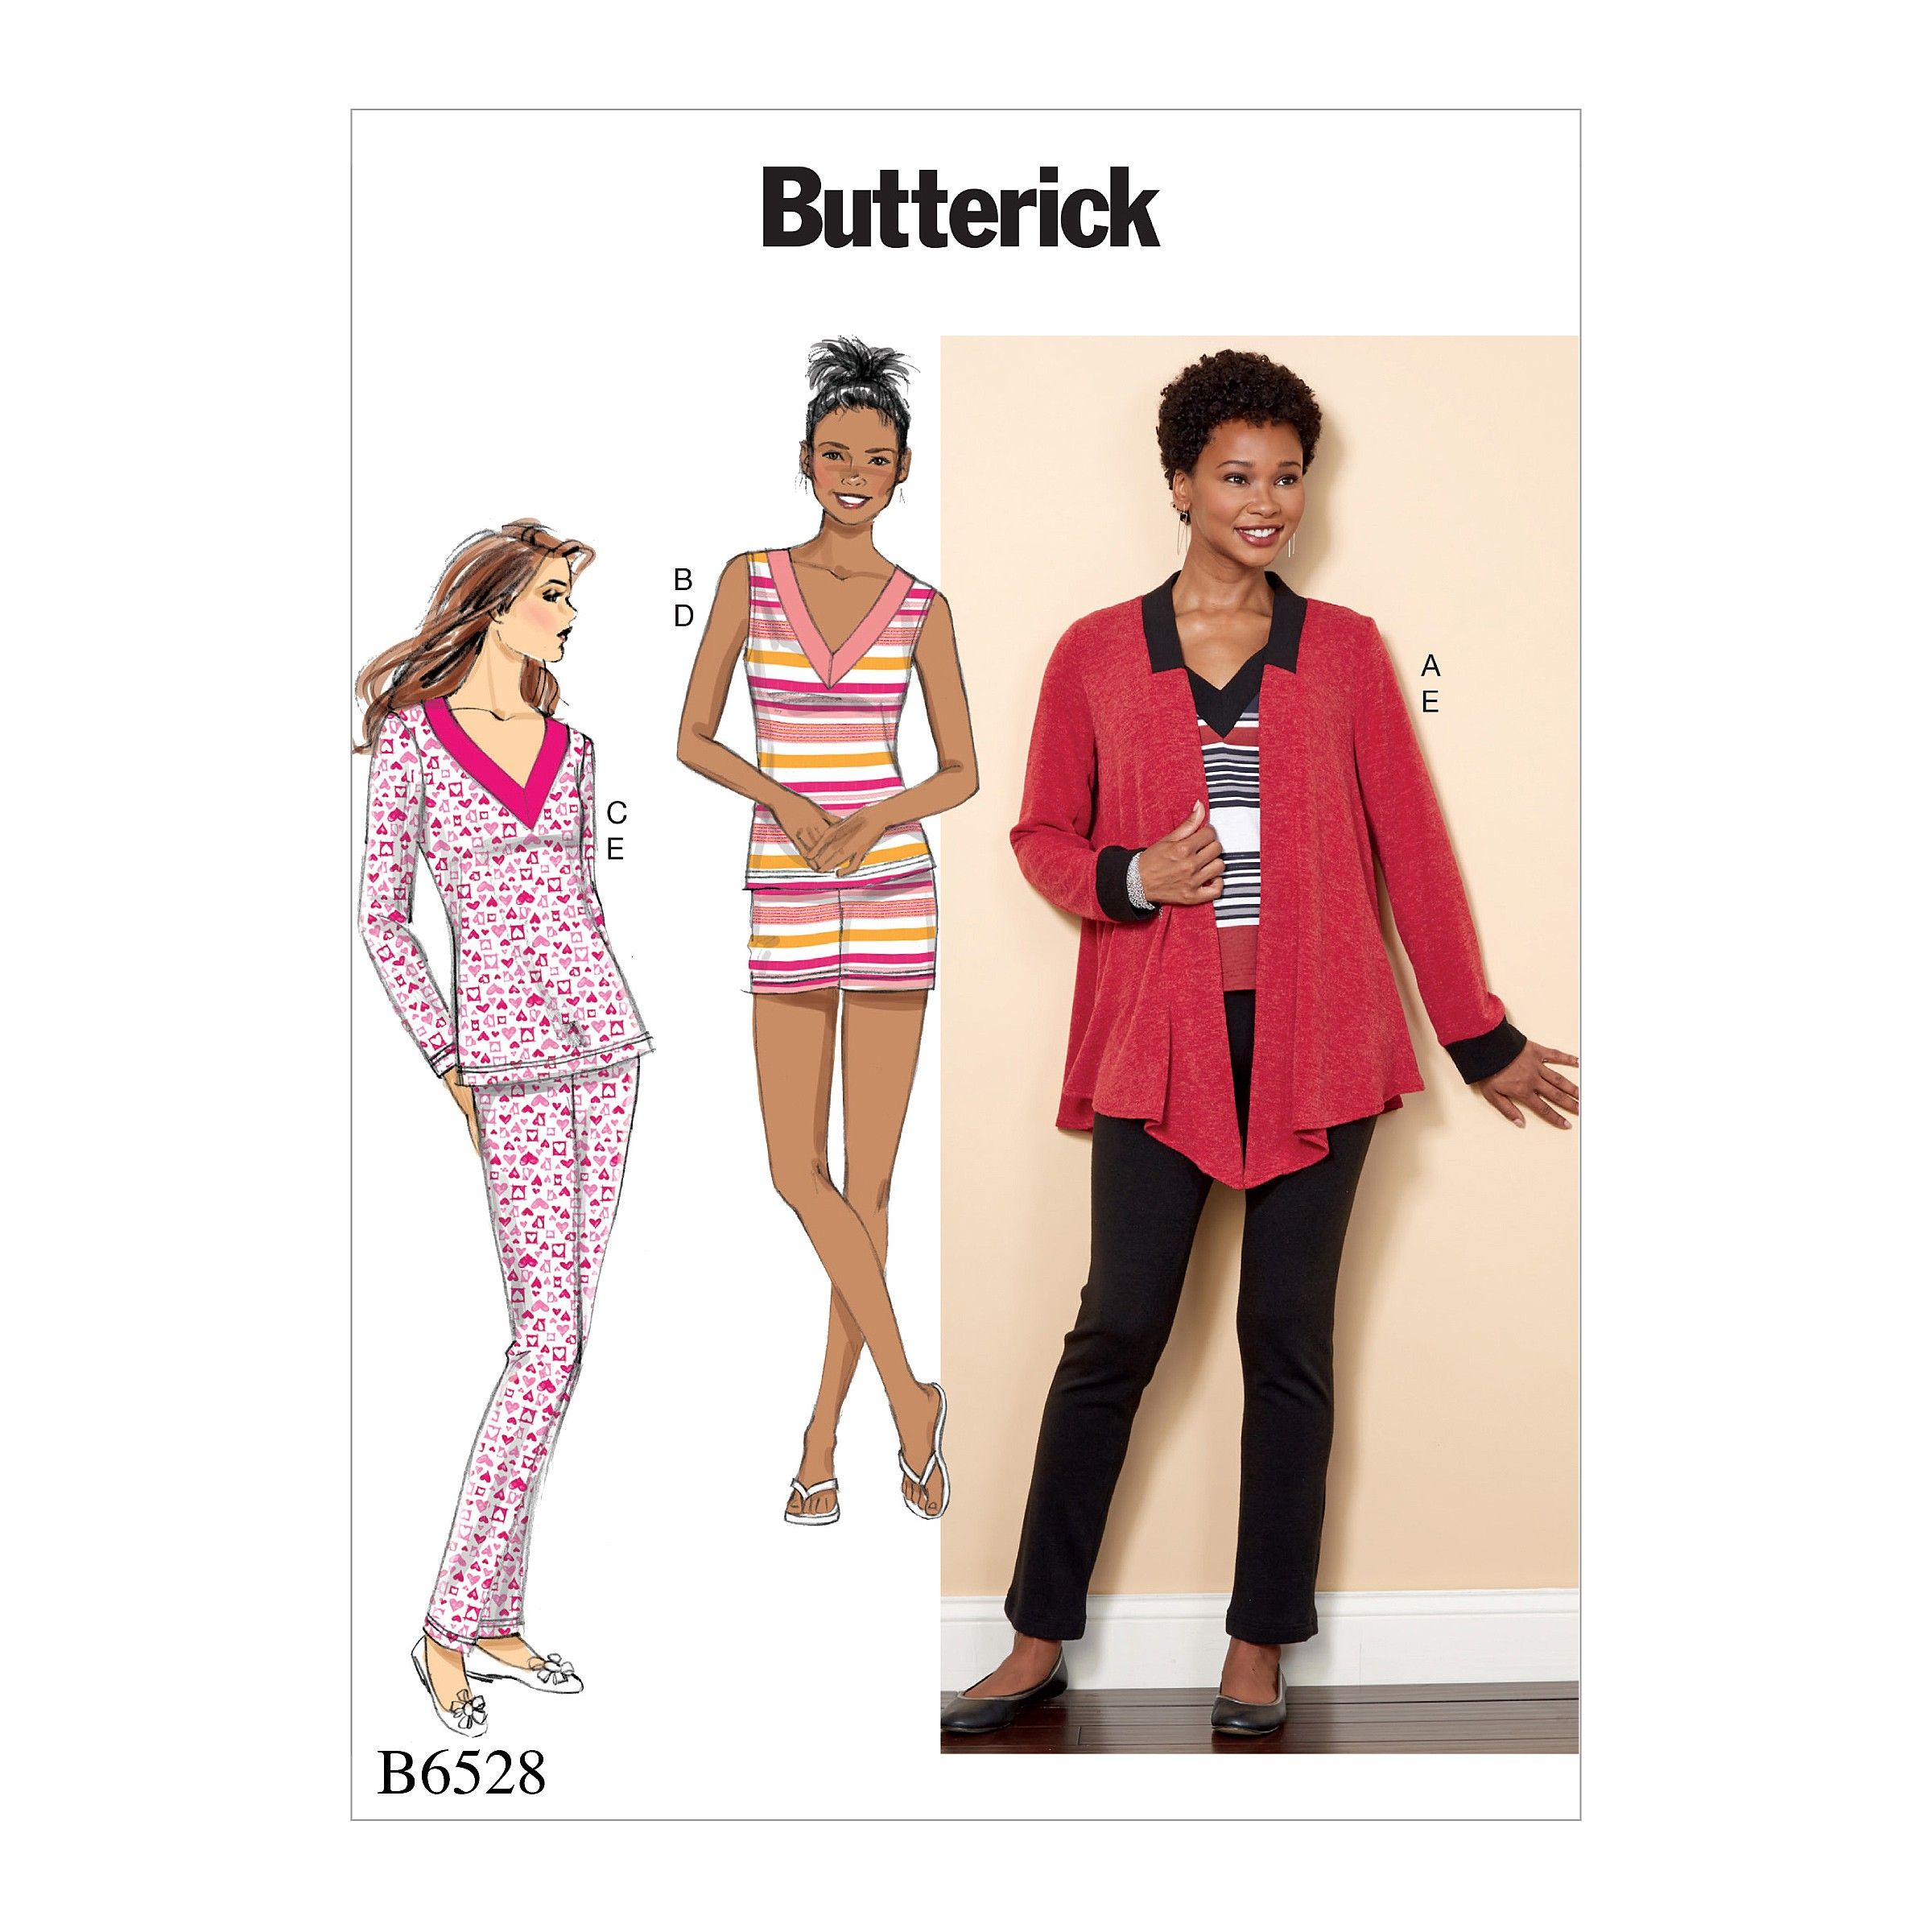 Butterick Sewing Pattern 6528 Misses' Knit Jacket, Top, Shorts And Trousers